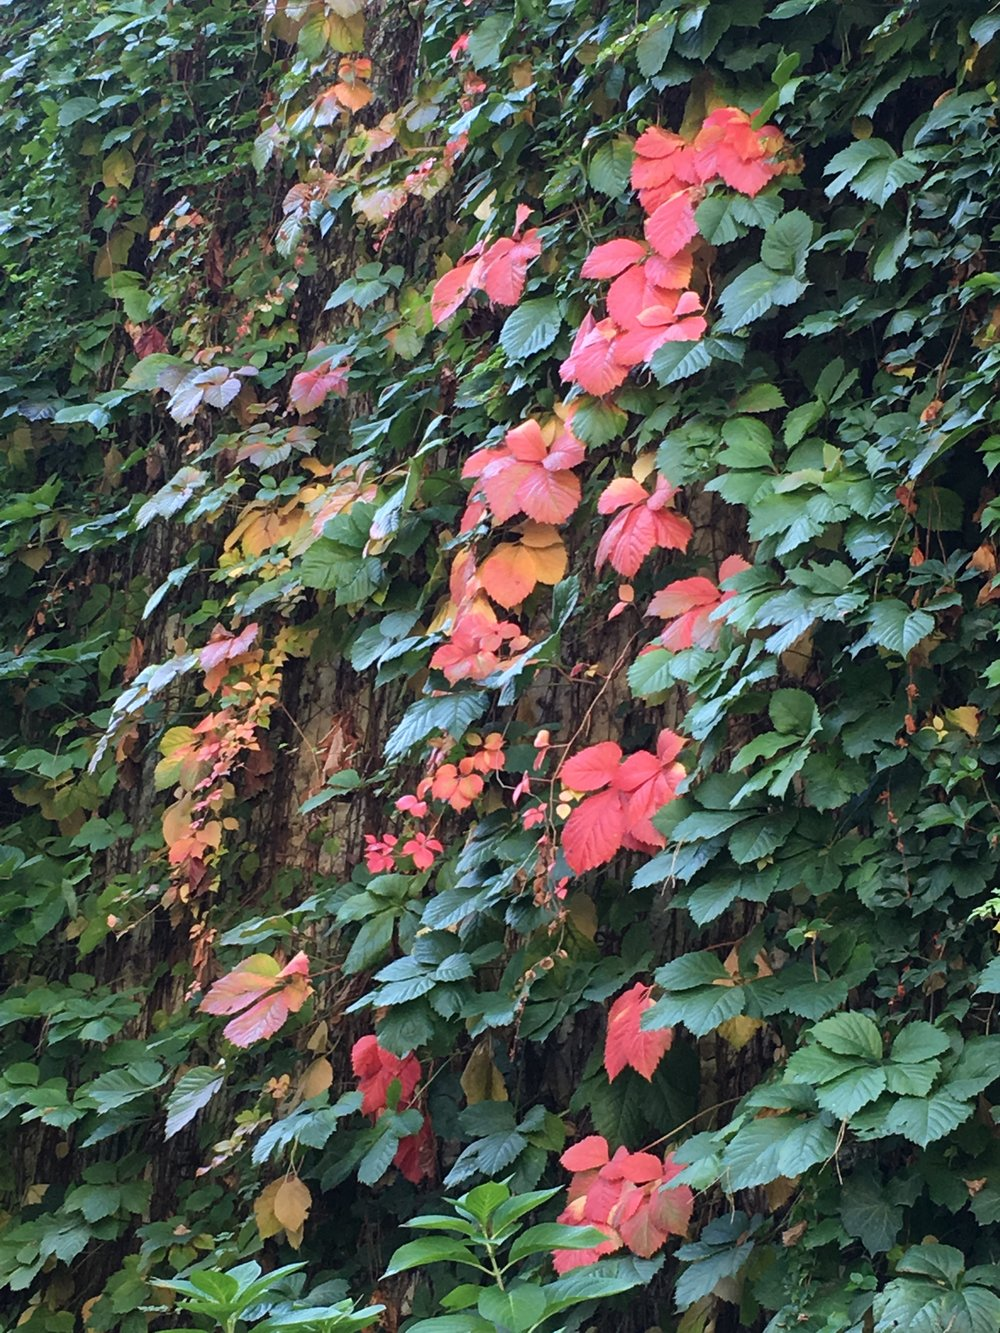 Colorful fall vines